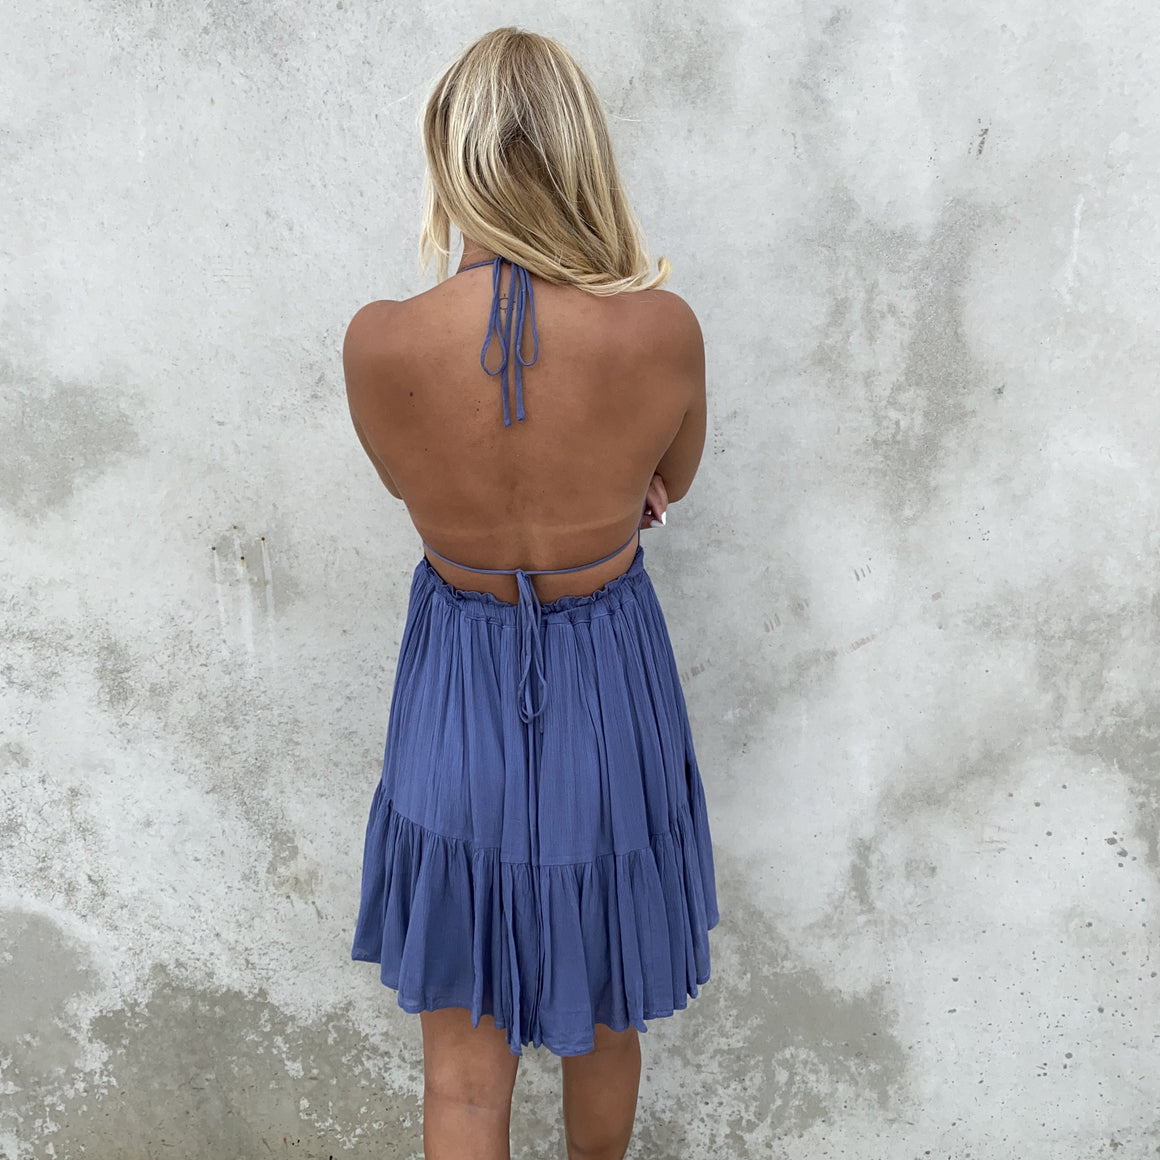 Kiss The Day Halter Summer Dress in Dusty Blue - Dainty Hooligan